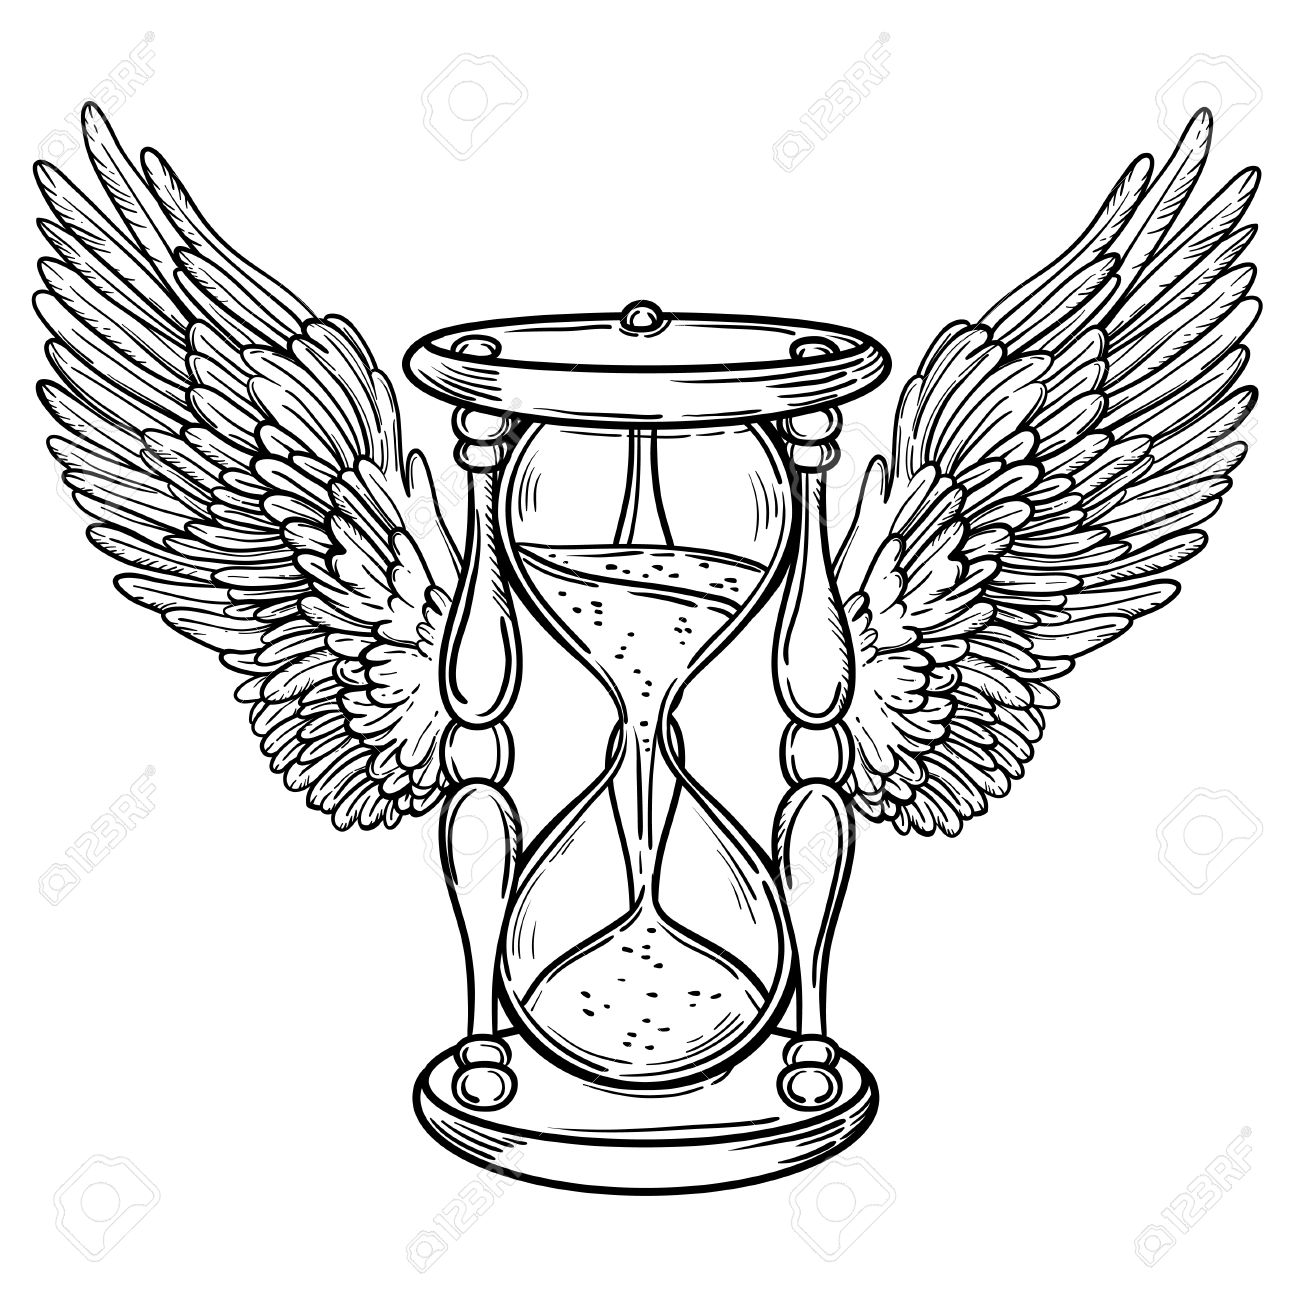 1300x1300 Decorative Antique Hourglass Illustration With Wings. Hand Drawn